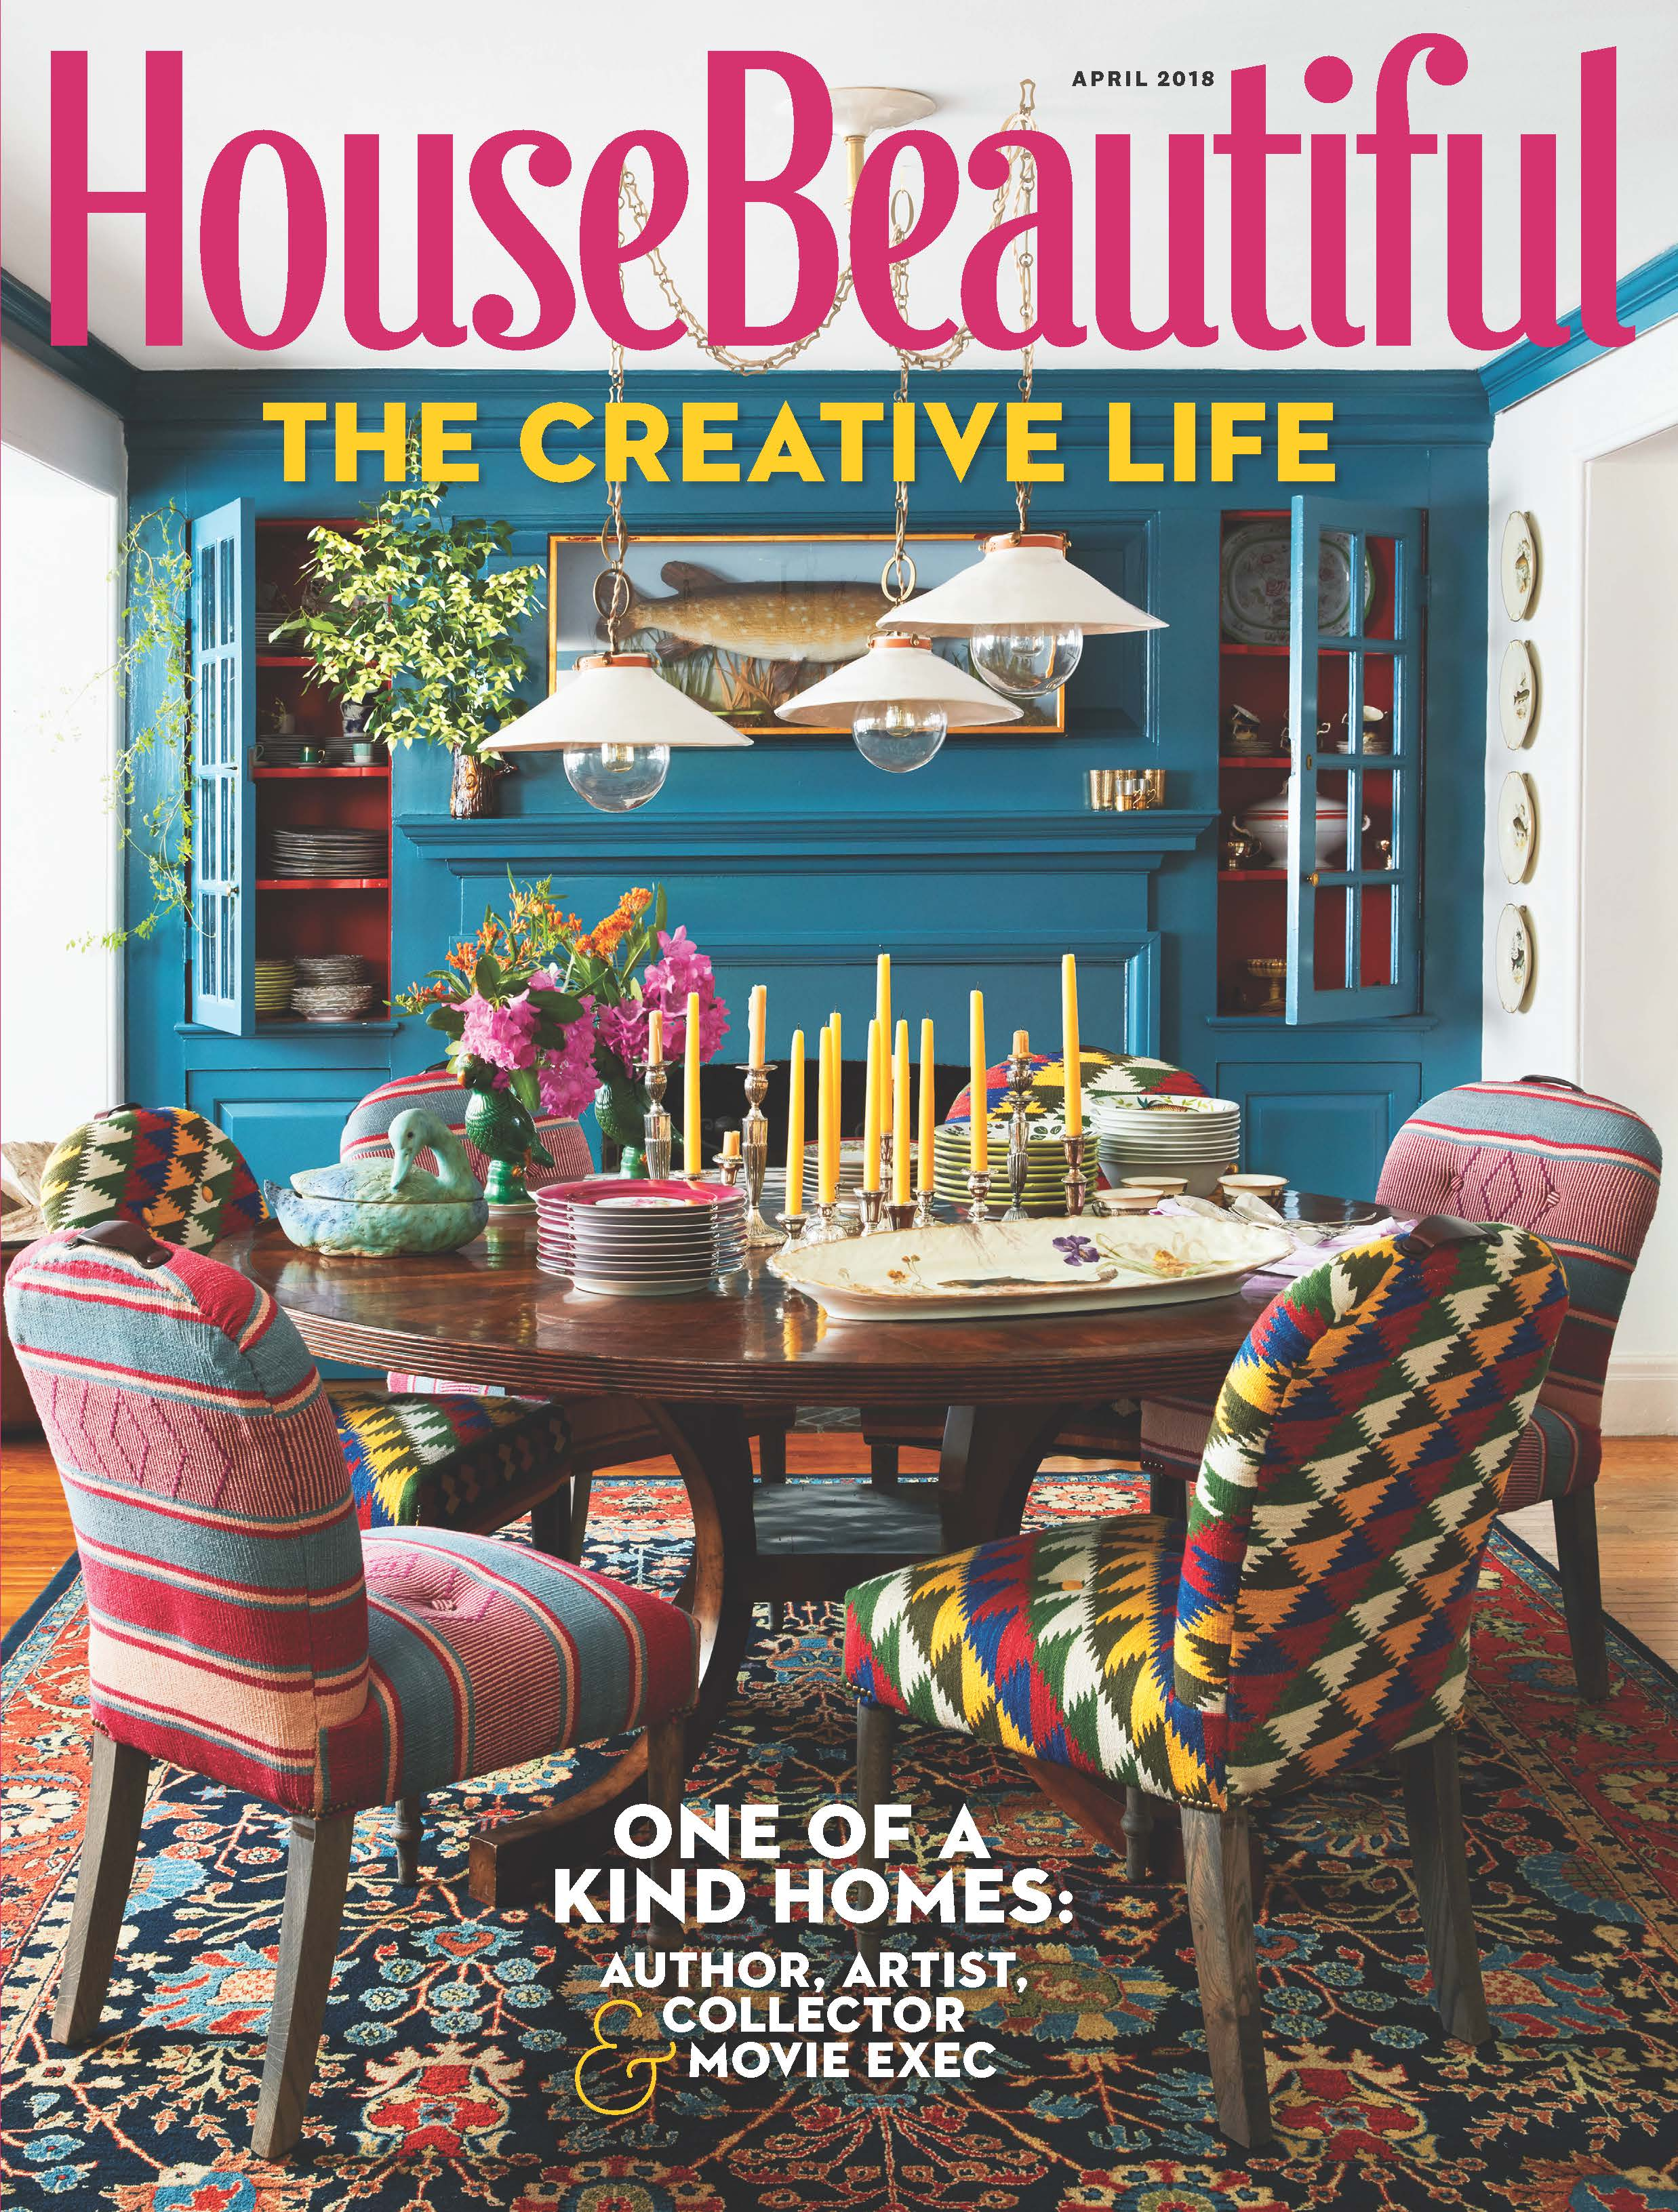 HouseBeautiful_0418_Cover.jpg